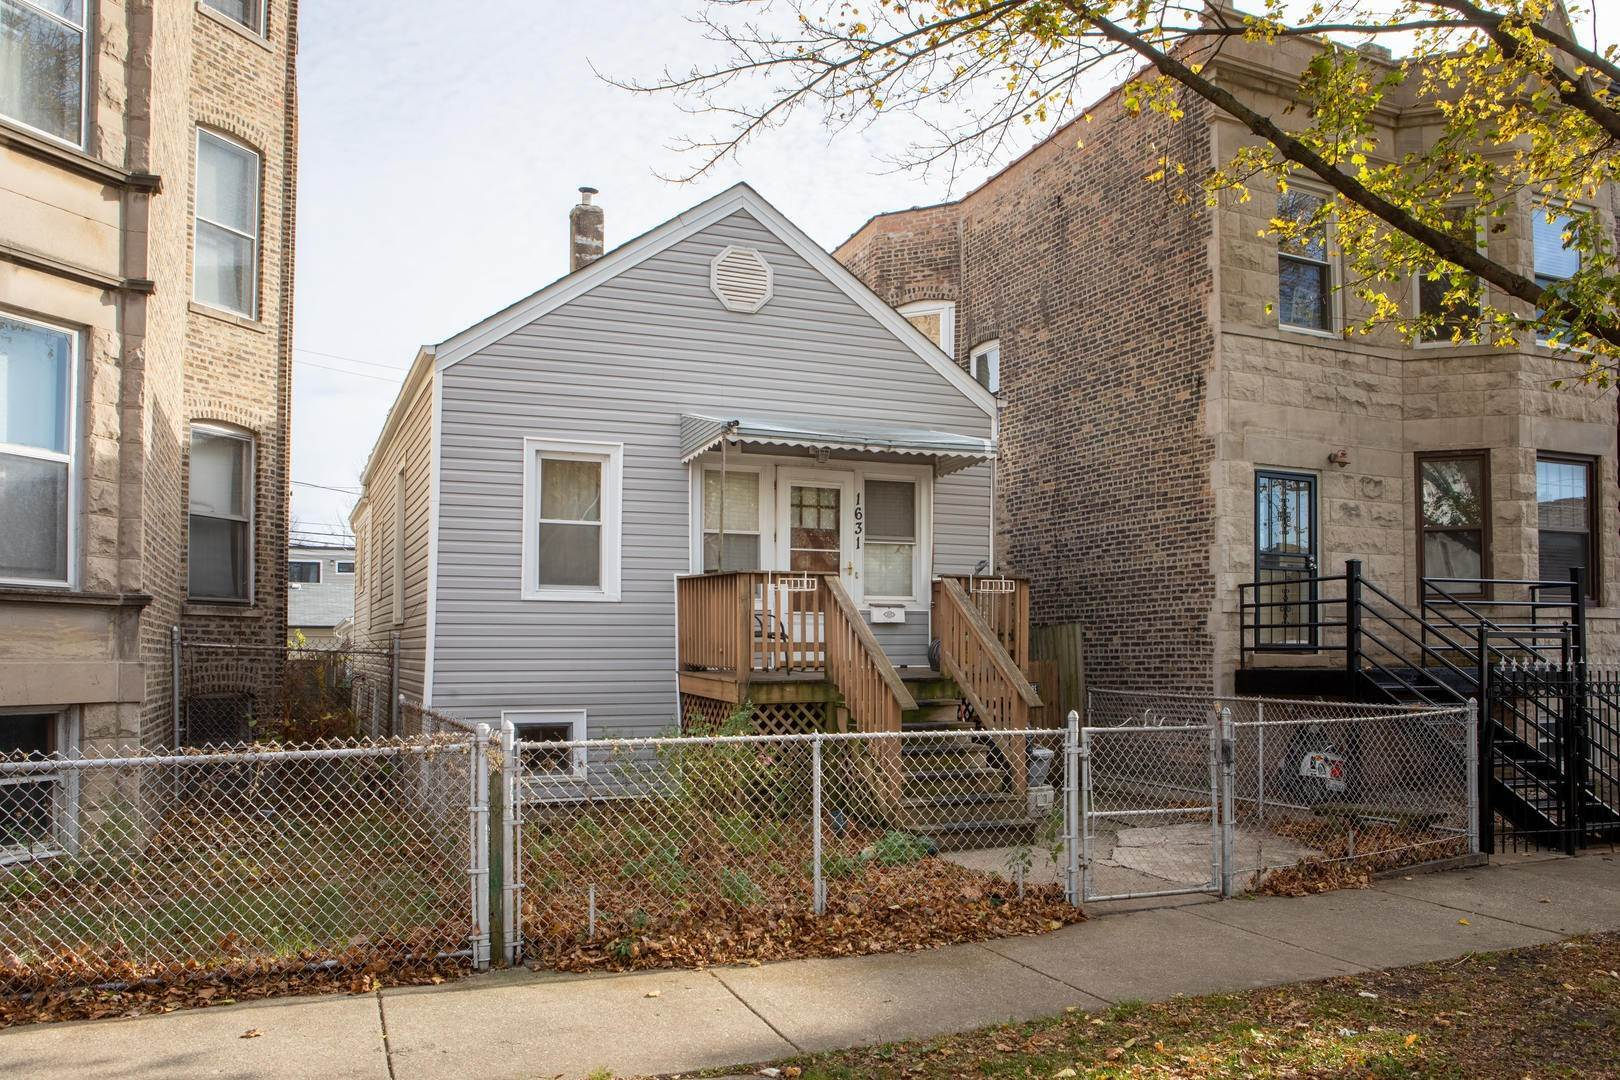 Property for Sale at 1631 N Francisco Avenue Chicago, Illinois 60647 United States